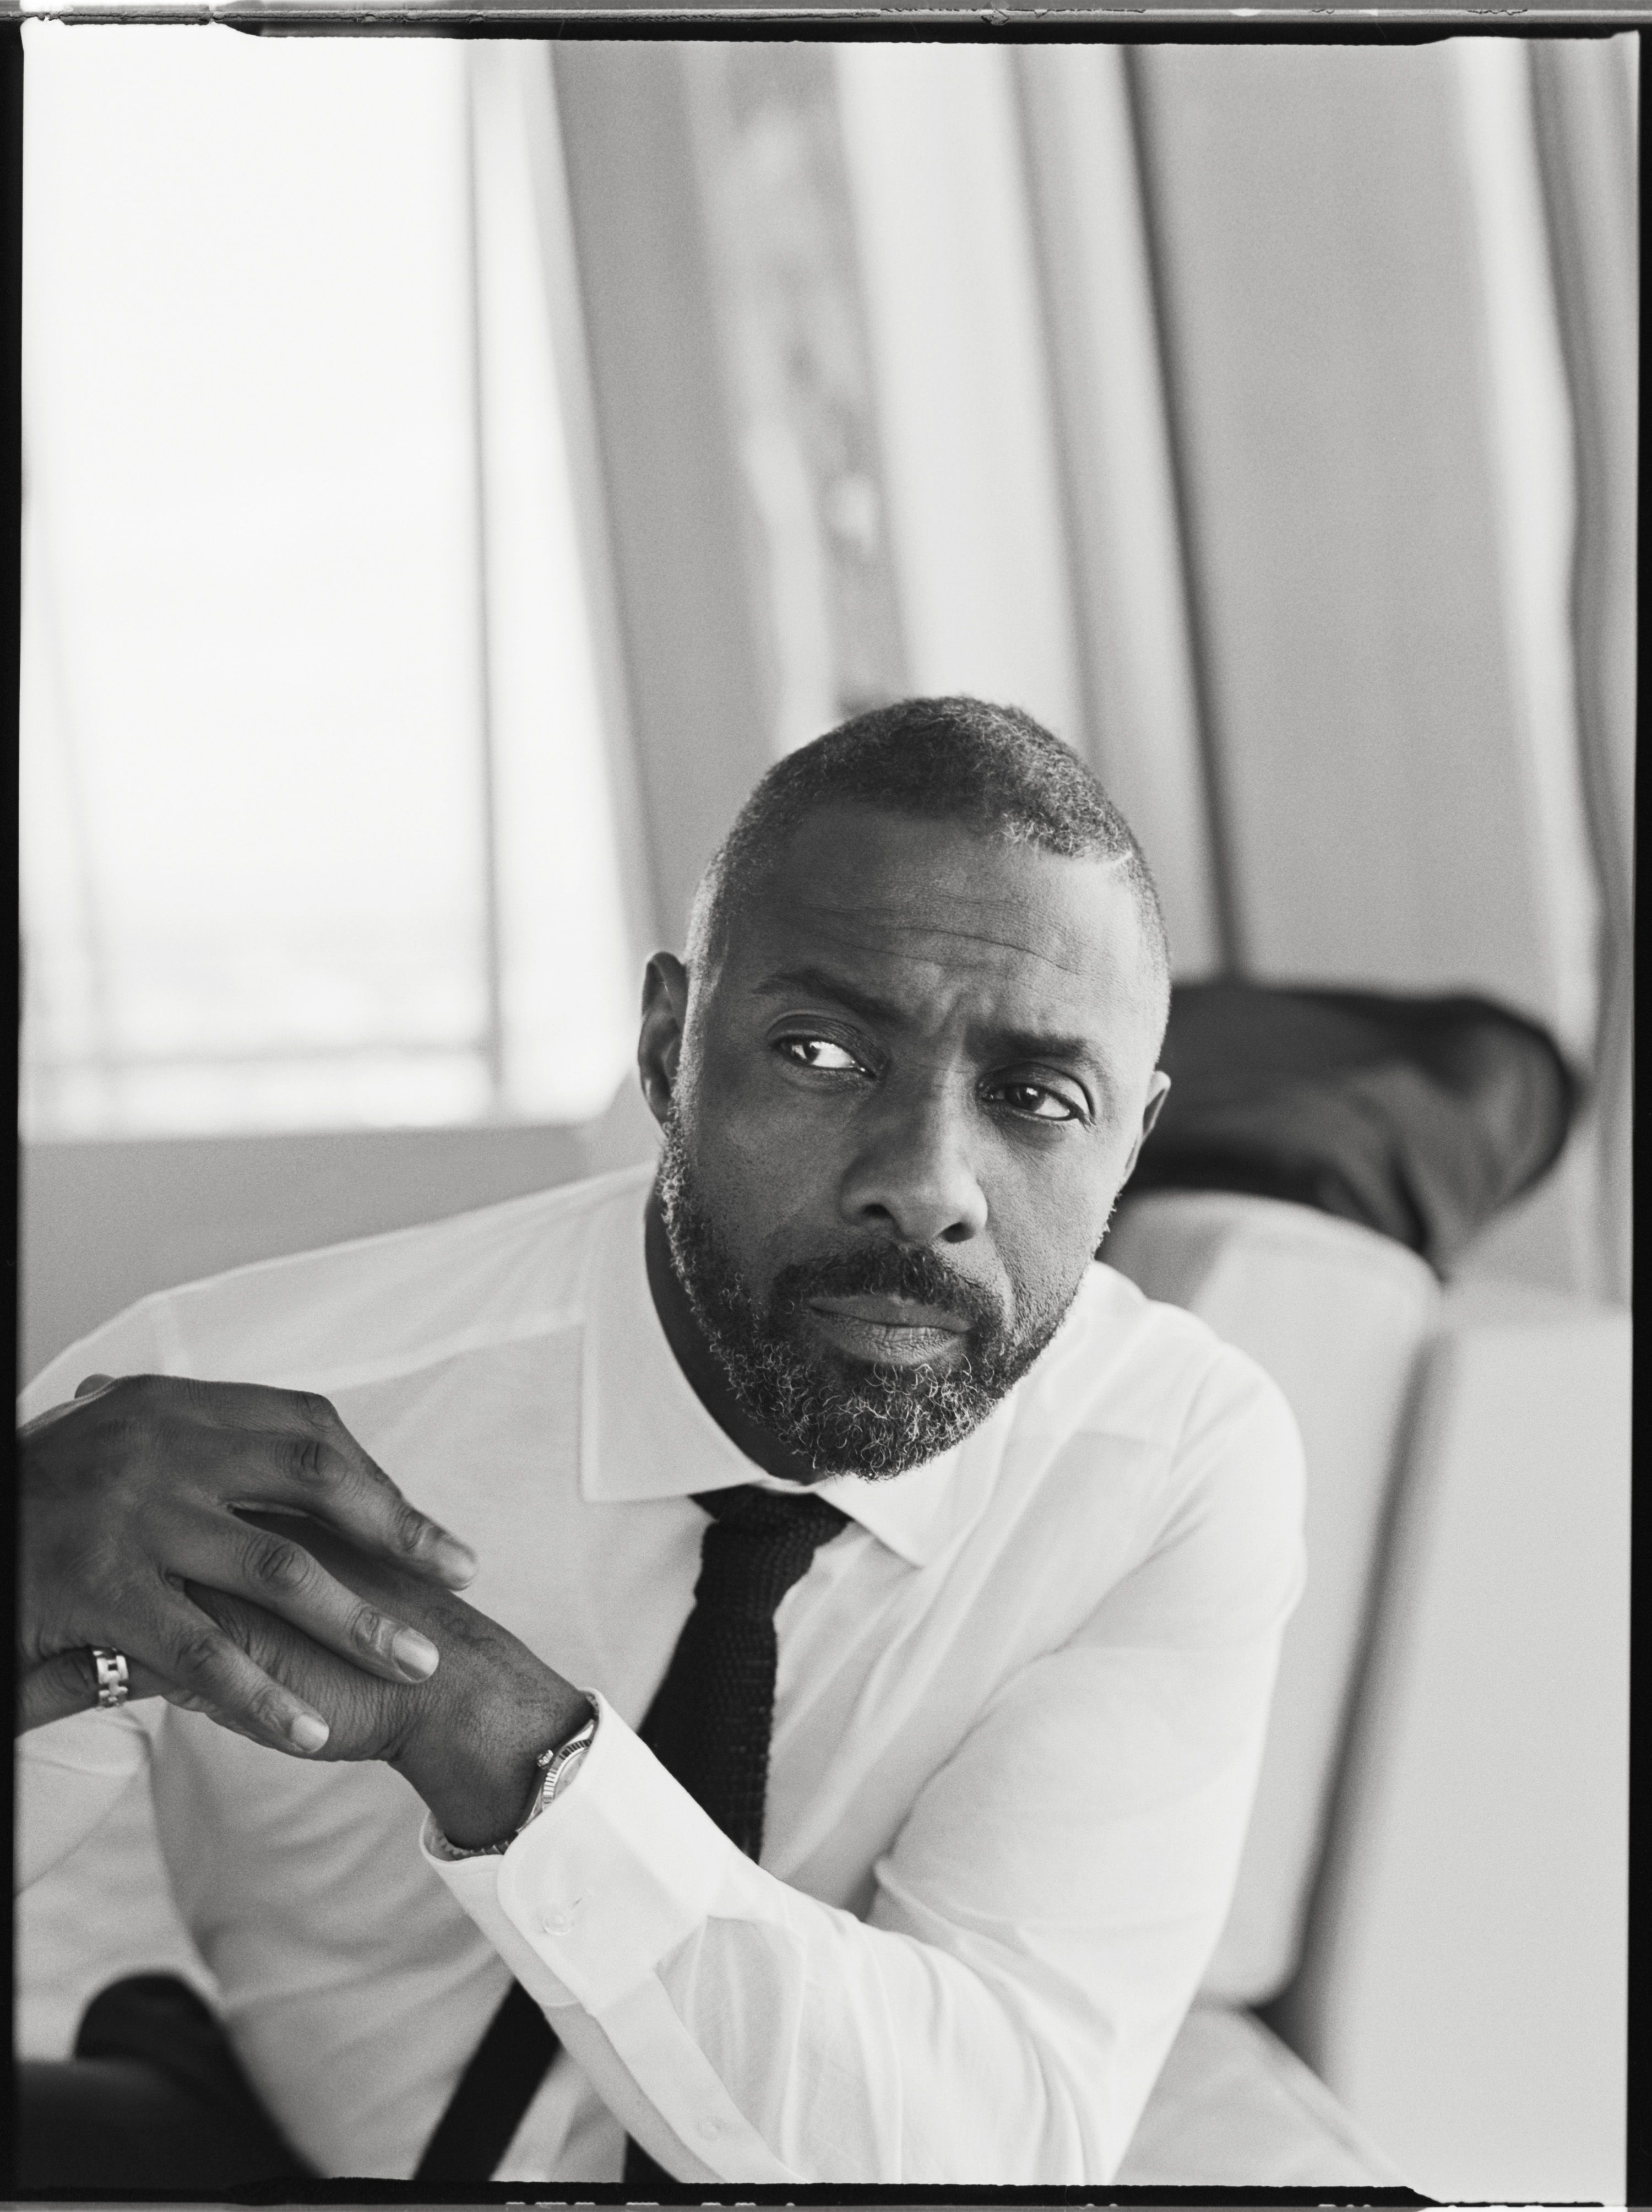 South African miracle water helps Idris Elba' sort out his financial problems